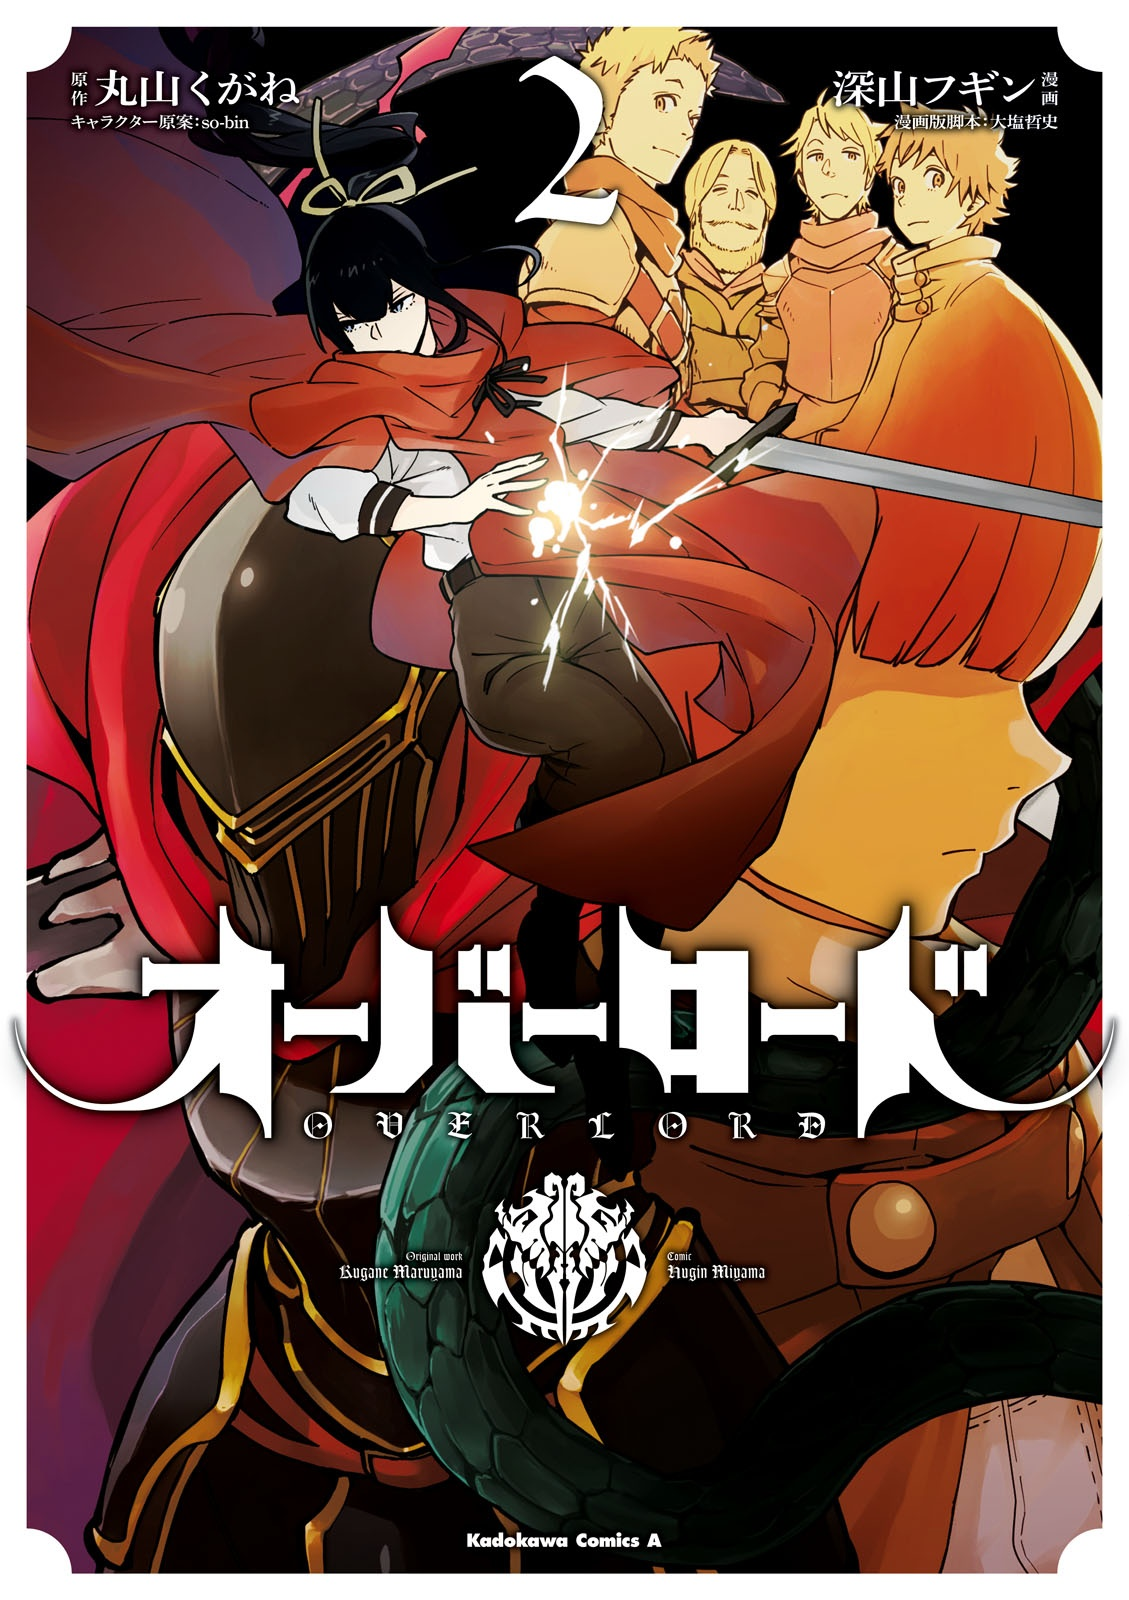 Overlord chapter 5